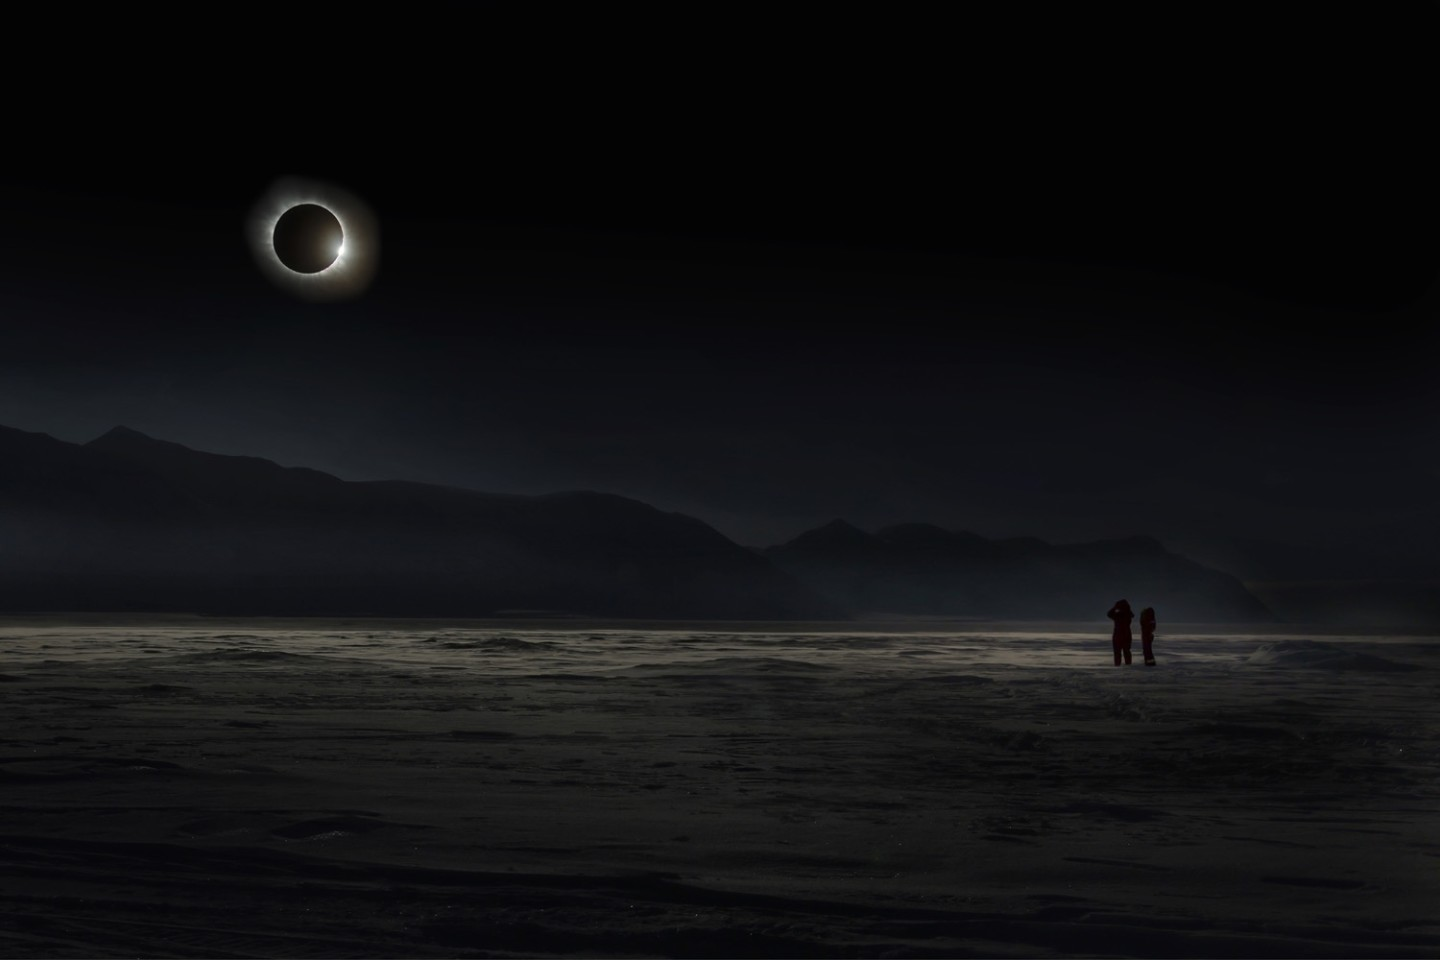 Vladimir Alekseev of Russia, the overall winner of this year's TPOTY, caught this image during a solar eclipse on the Norwegian island of Svalbard